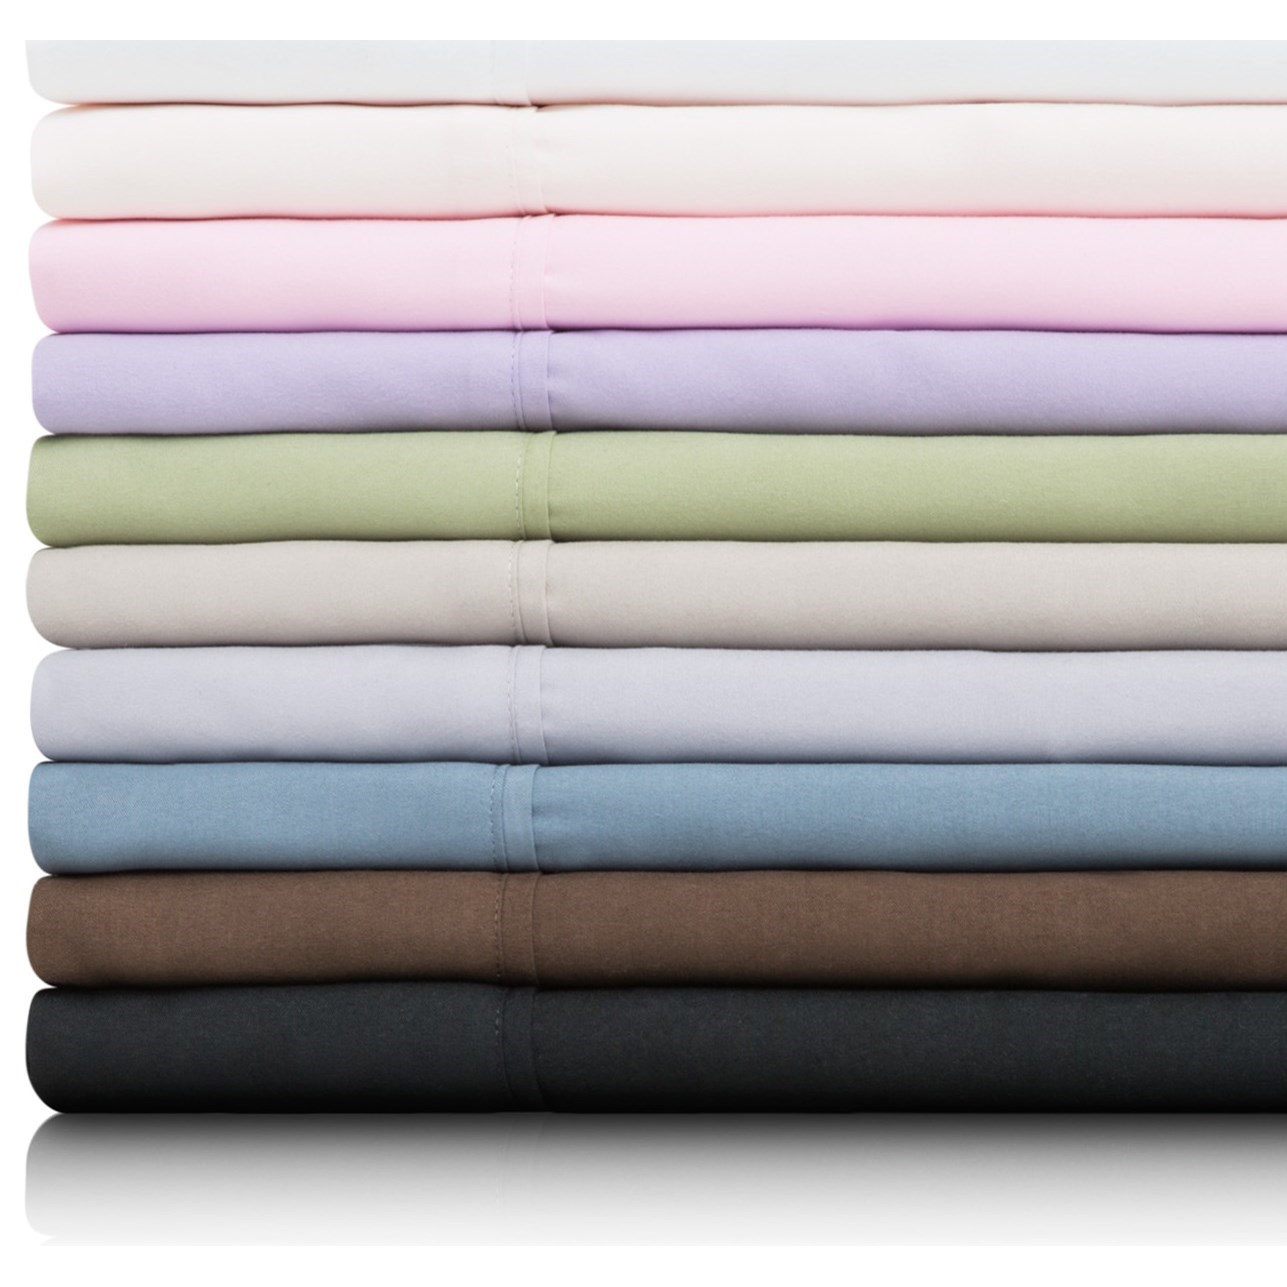 Malouf Brushed Microfiber King Woven™ Brushed Microfiber Pillowcases  - Item Number: MA90KKBKPC